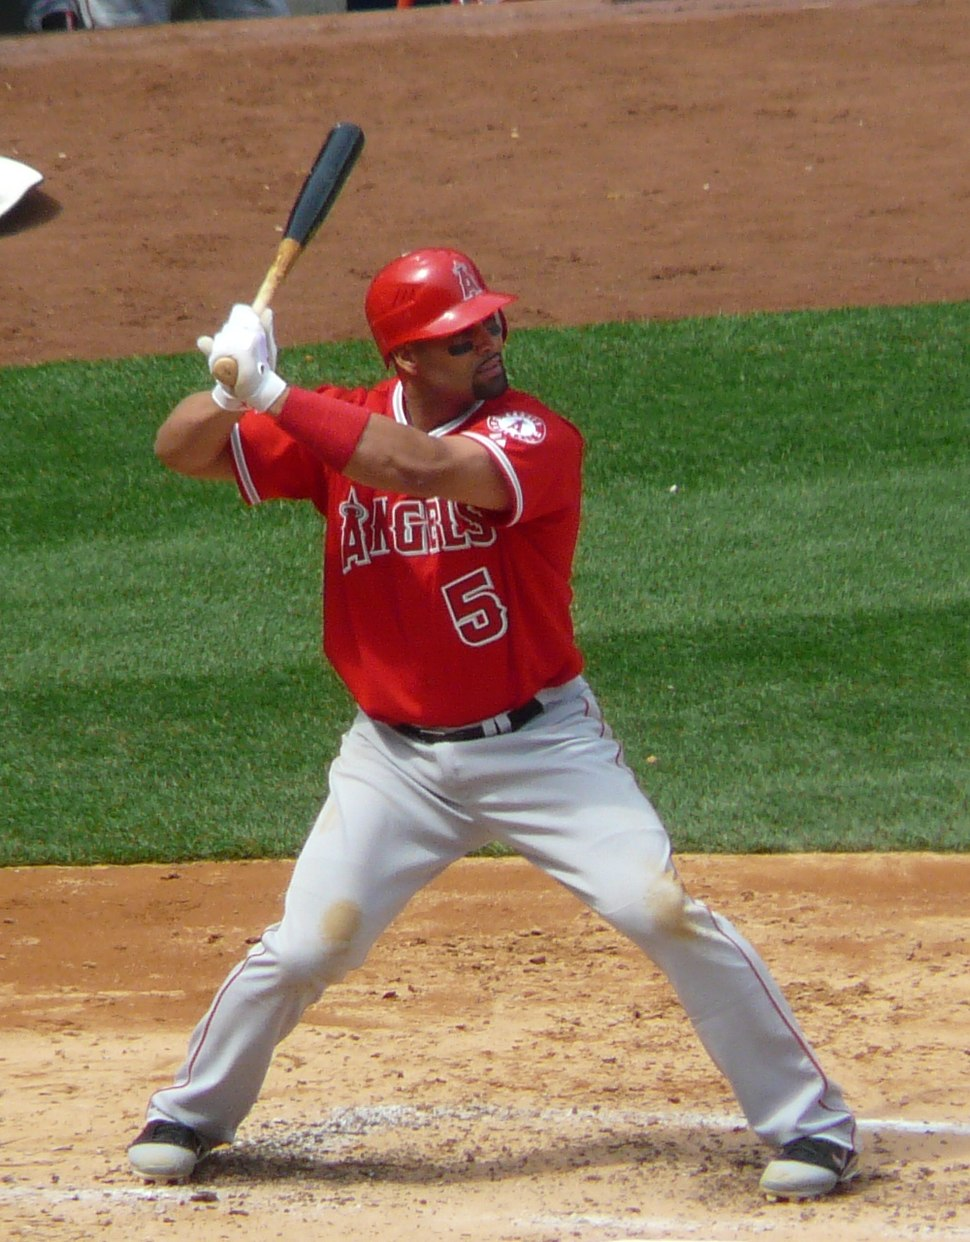 Albert Pujols on April 14, 2012